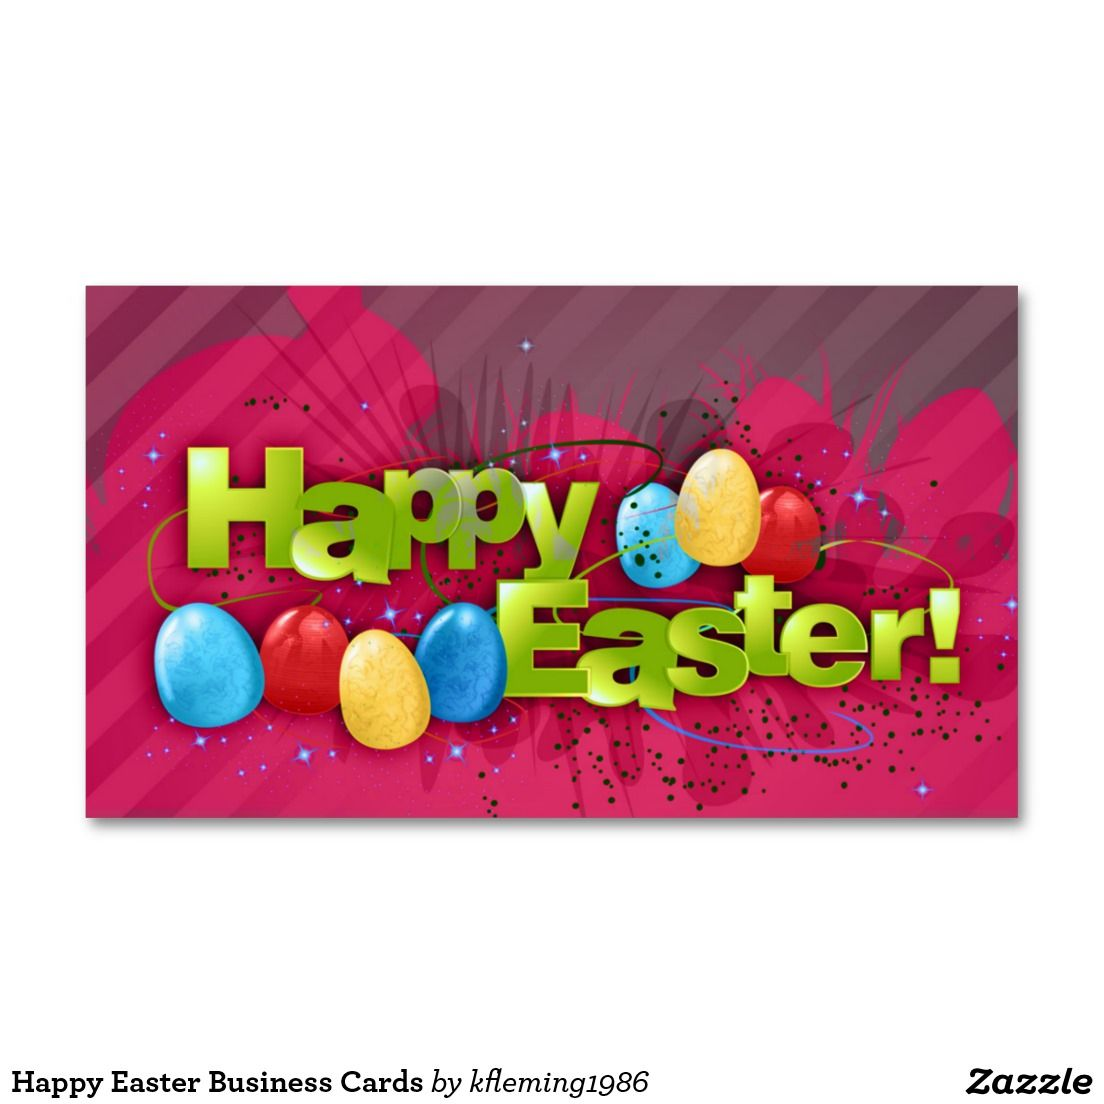 Happy Easter Business Cards Zazzle Com Happy Easter Business Cards Cards [ 1104 x 1104 Pixel ]